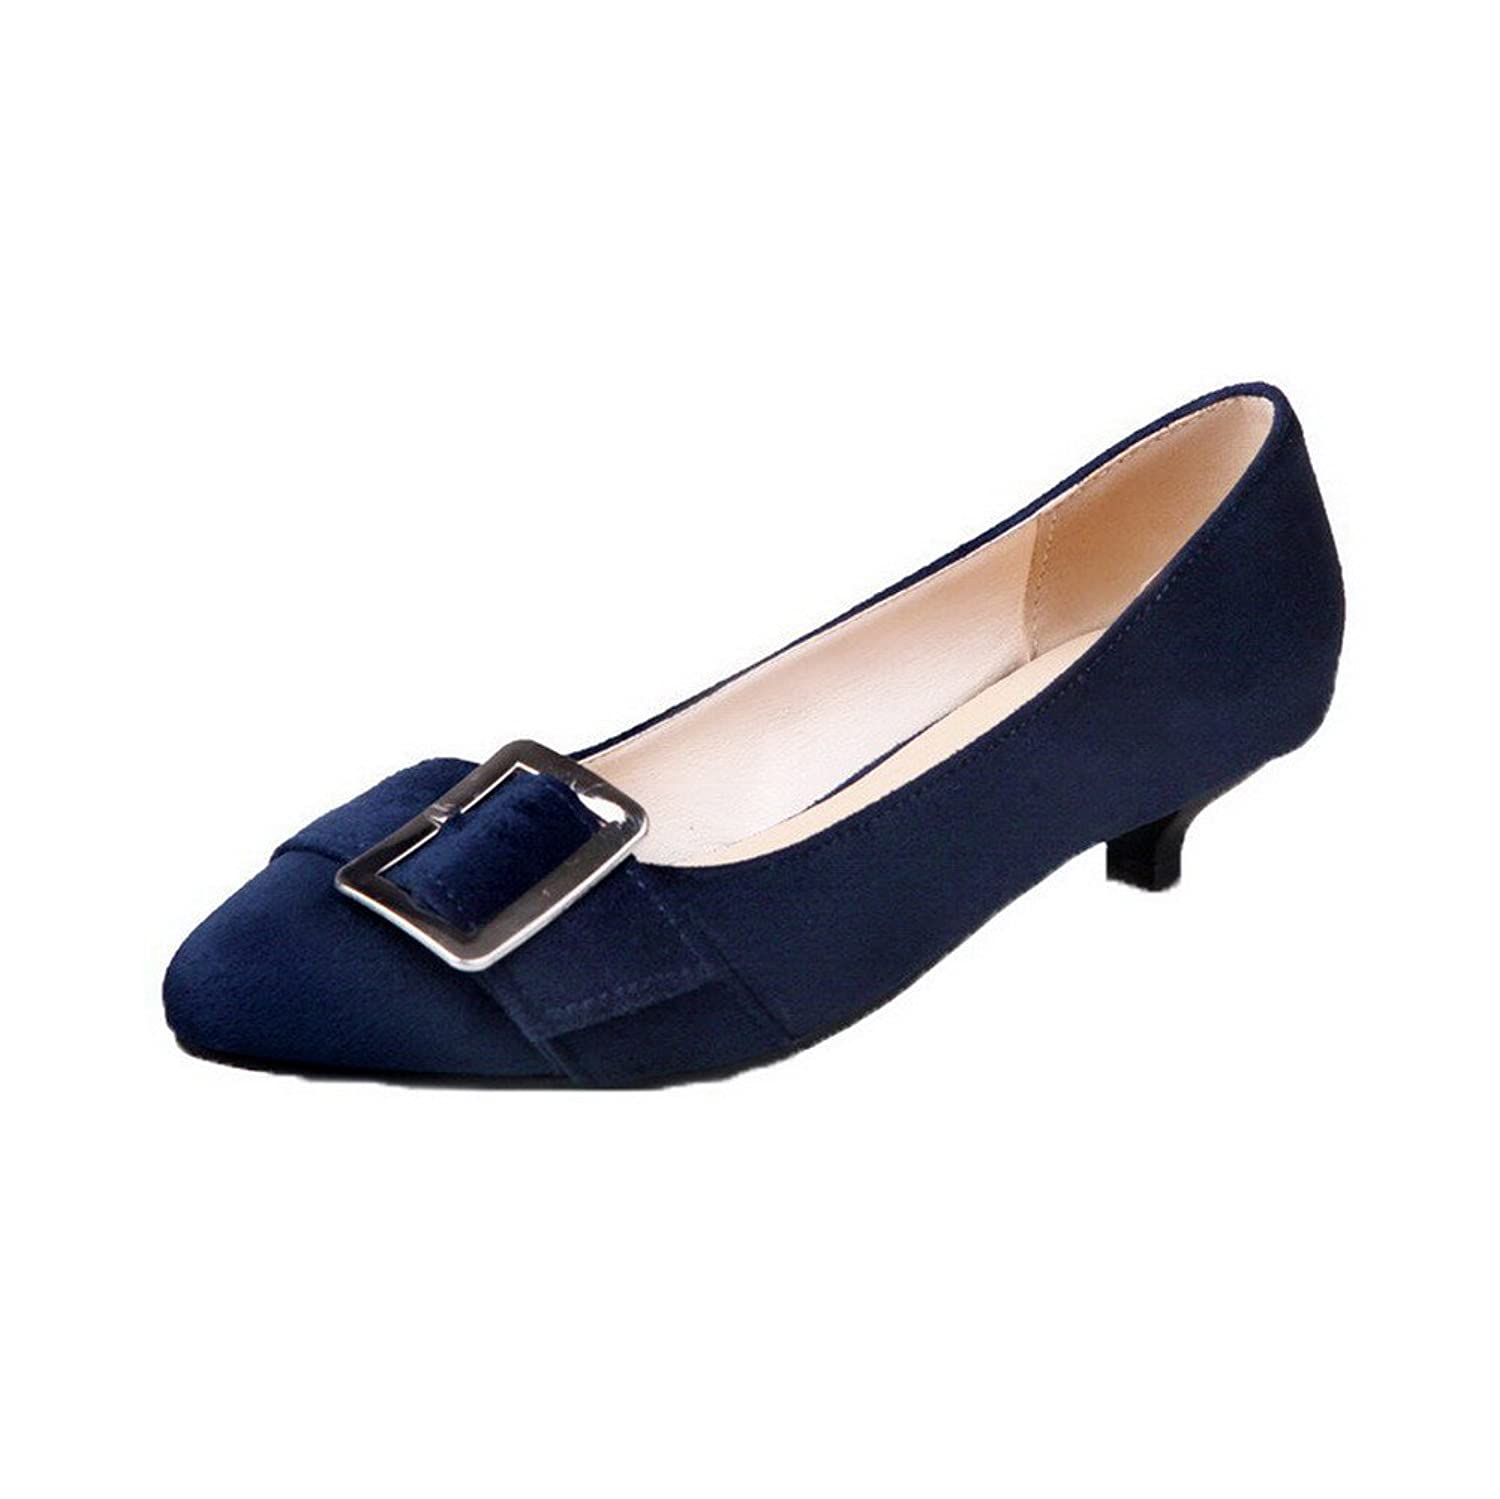 WeenFashion Women's Closed-Toe Frosted Low-Heels Pull-on Solid Pumps-Shoes